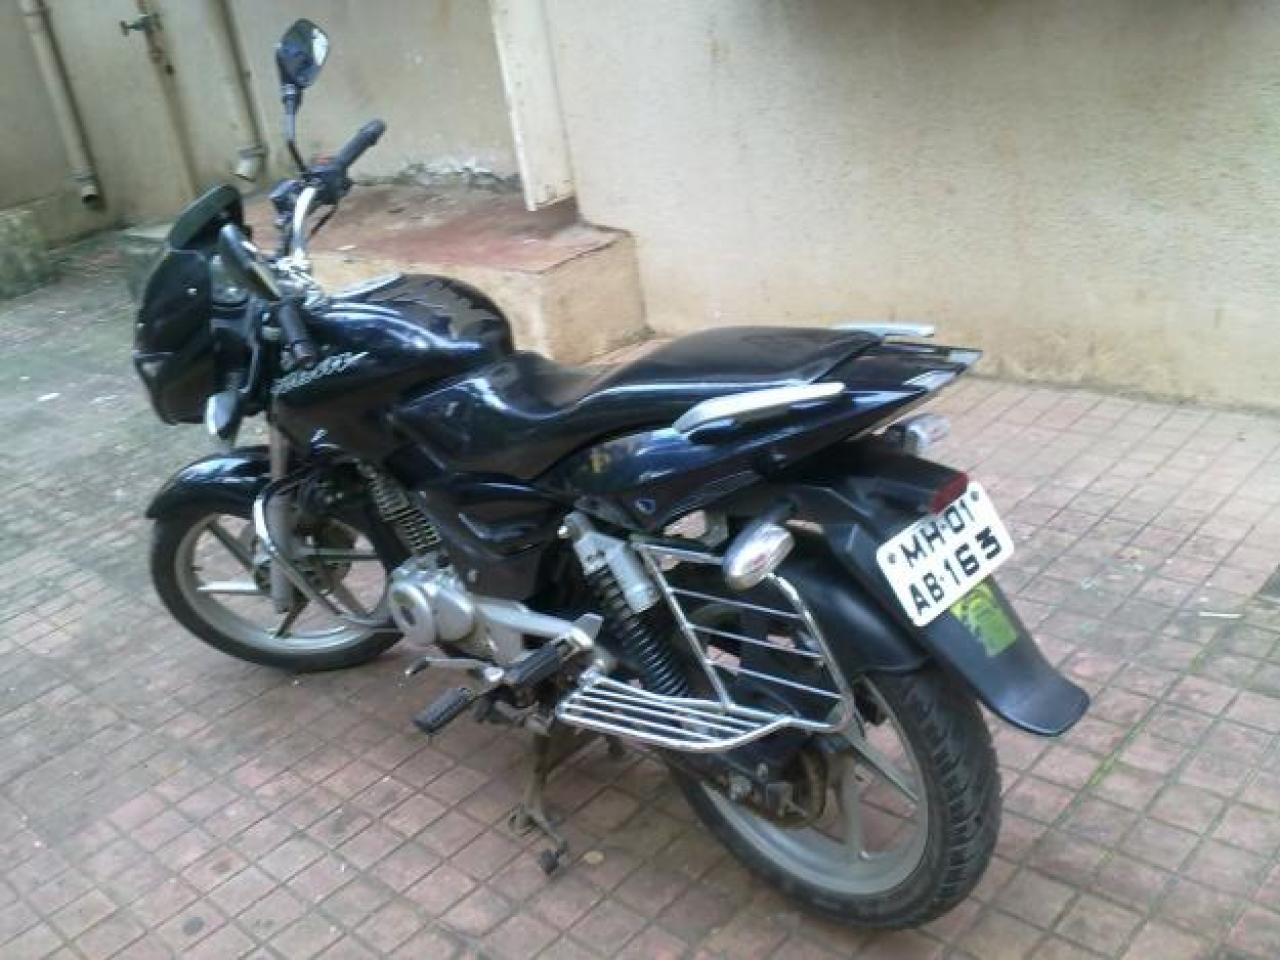 Ikman Lk Bikes For Sale - 800 1024 1280 1600